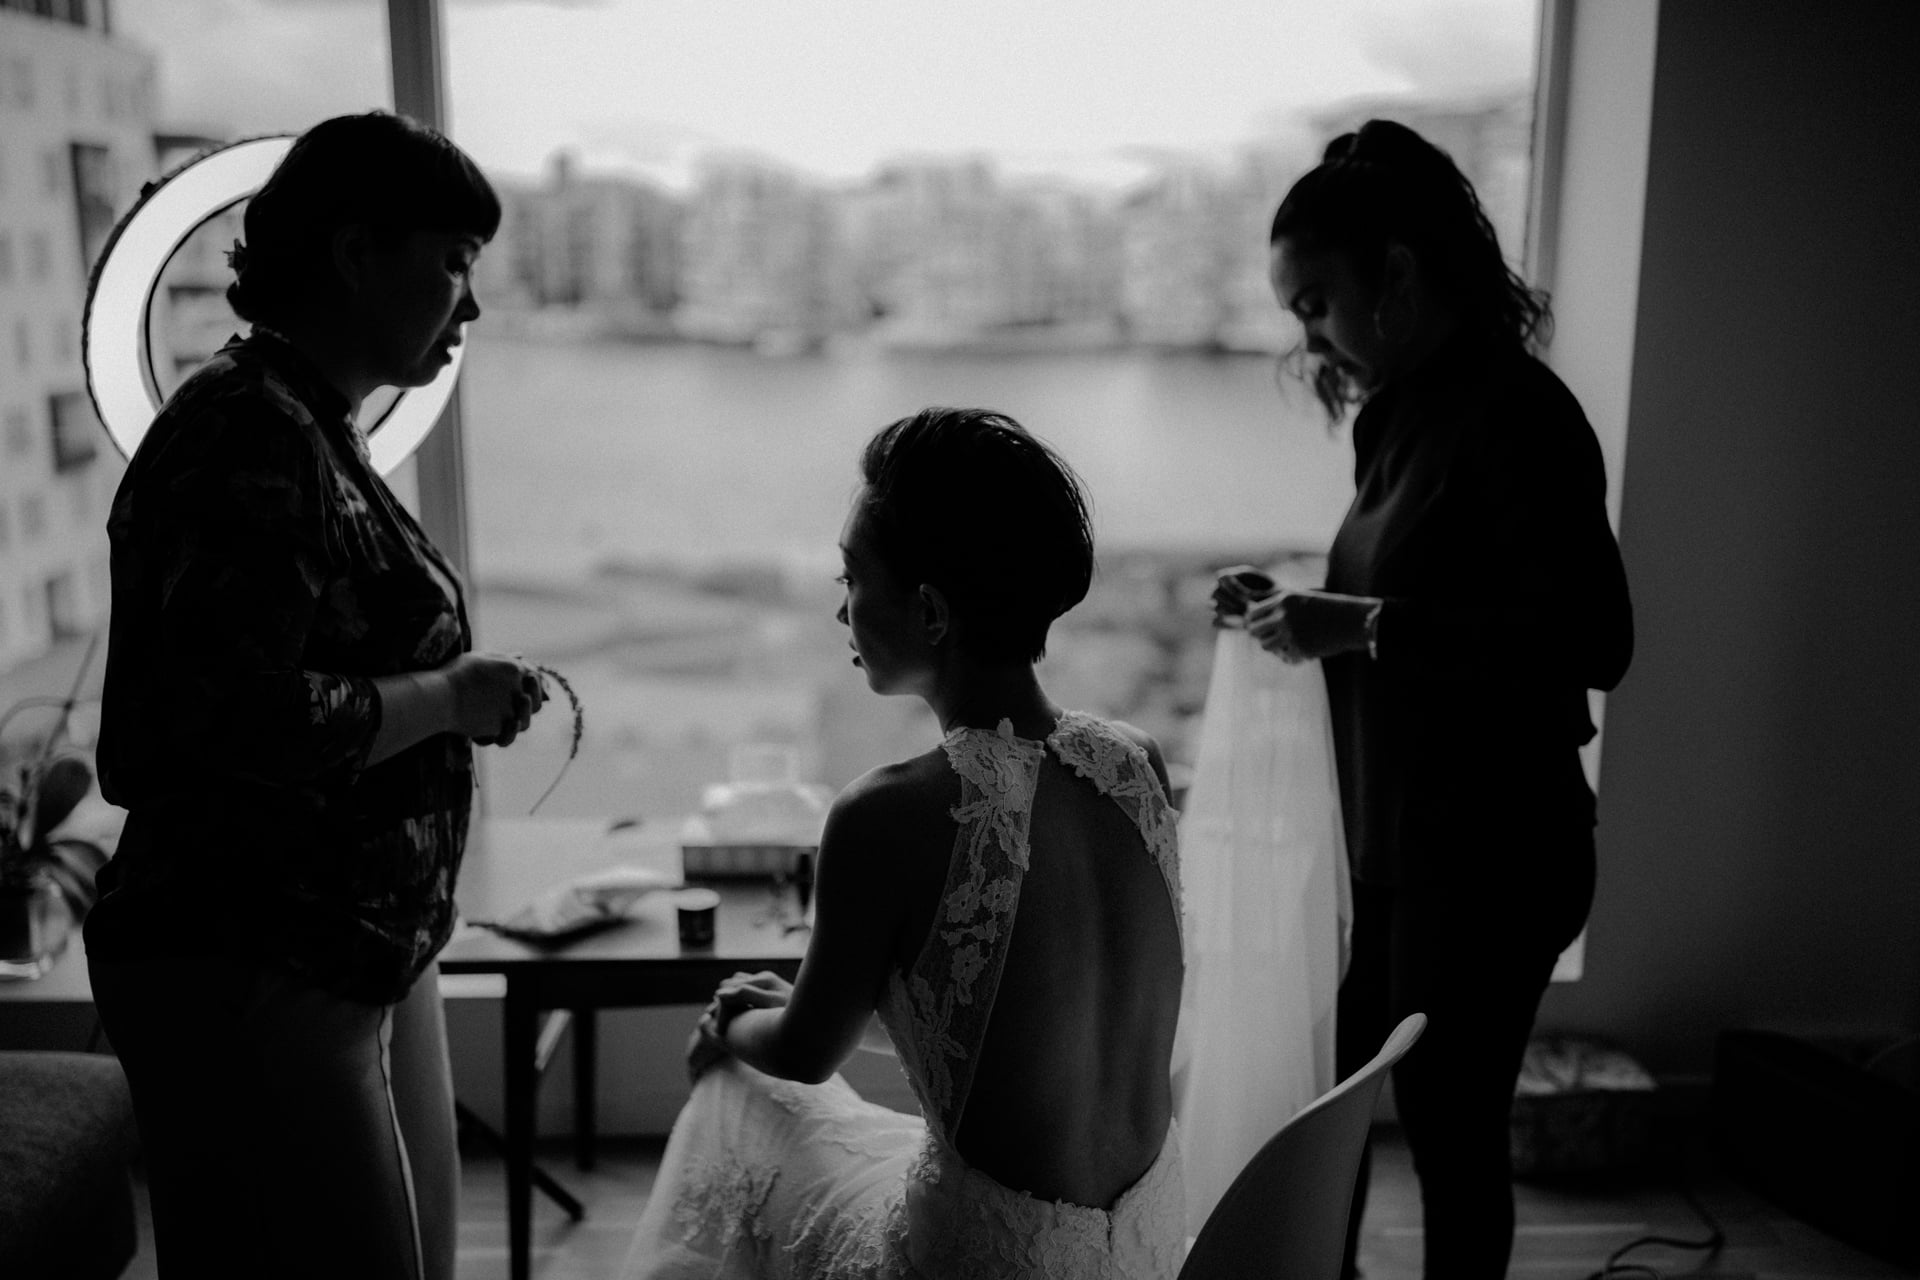 The bride is getting ready for her wedding.